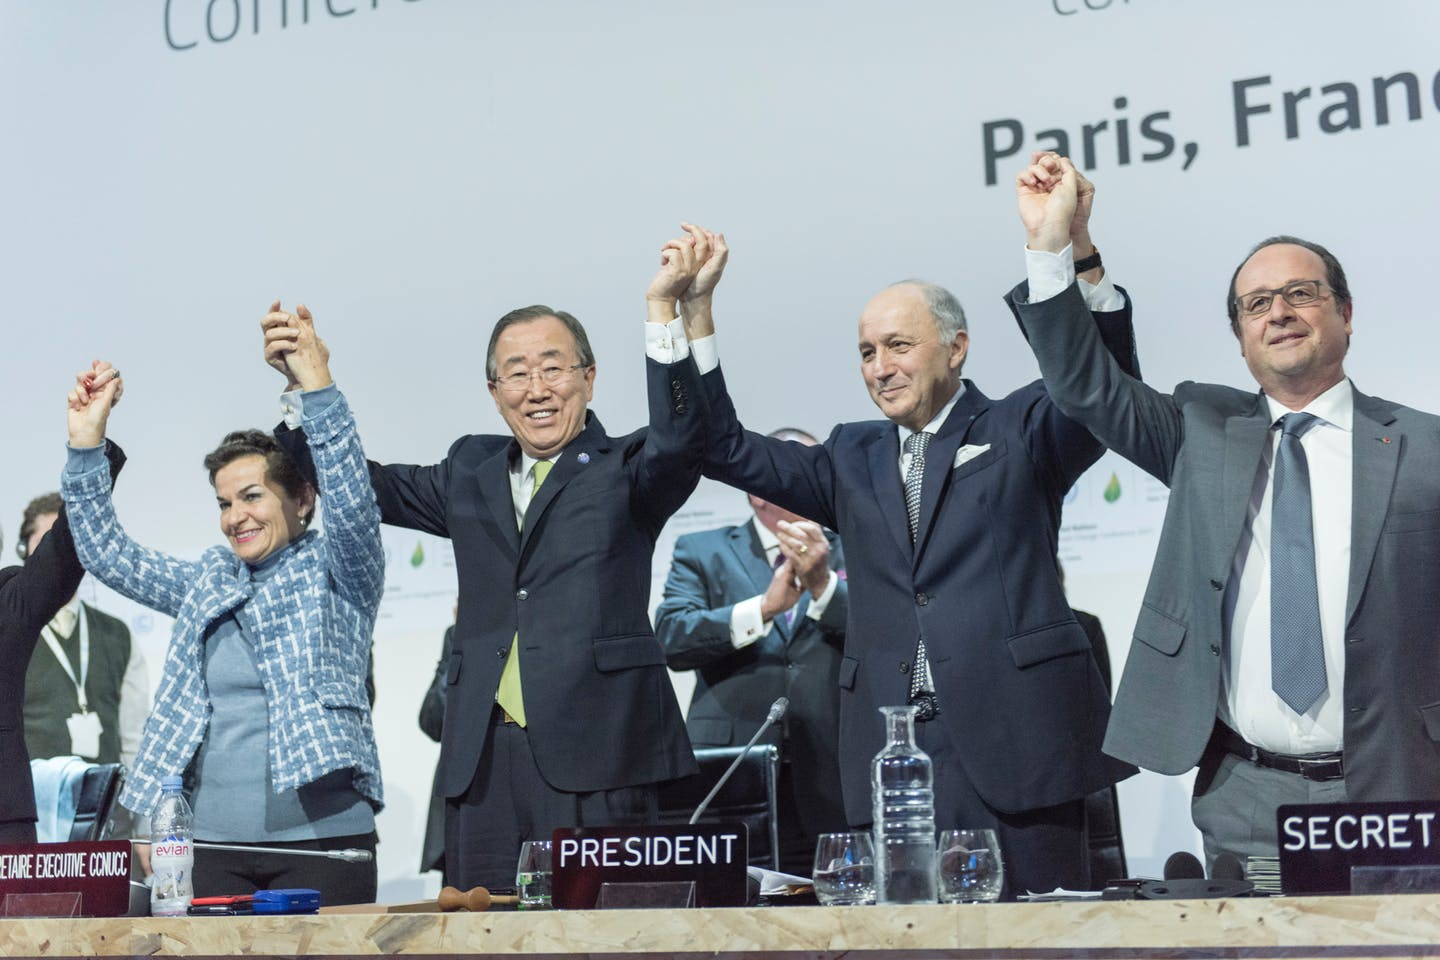 Closing Ceremony at COP21